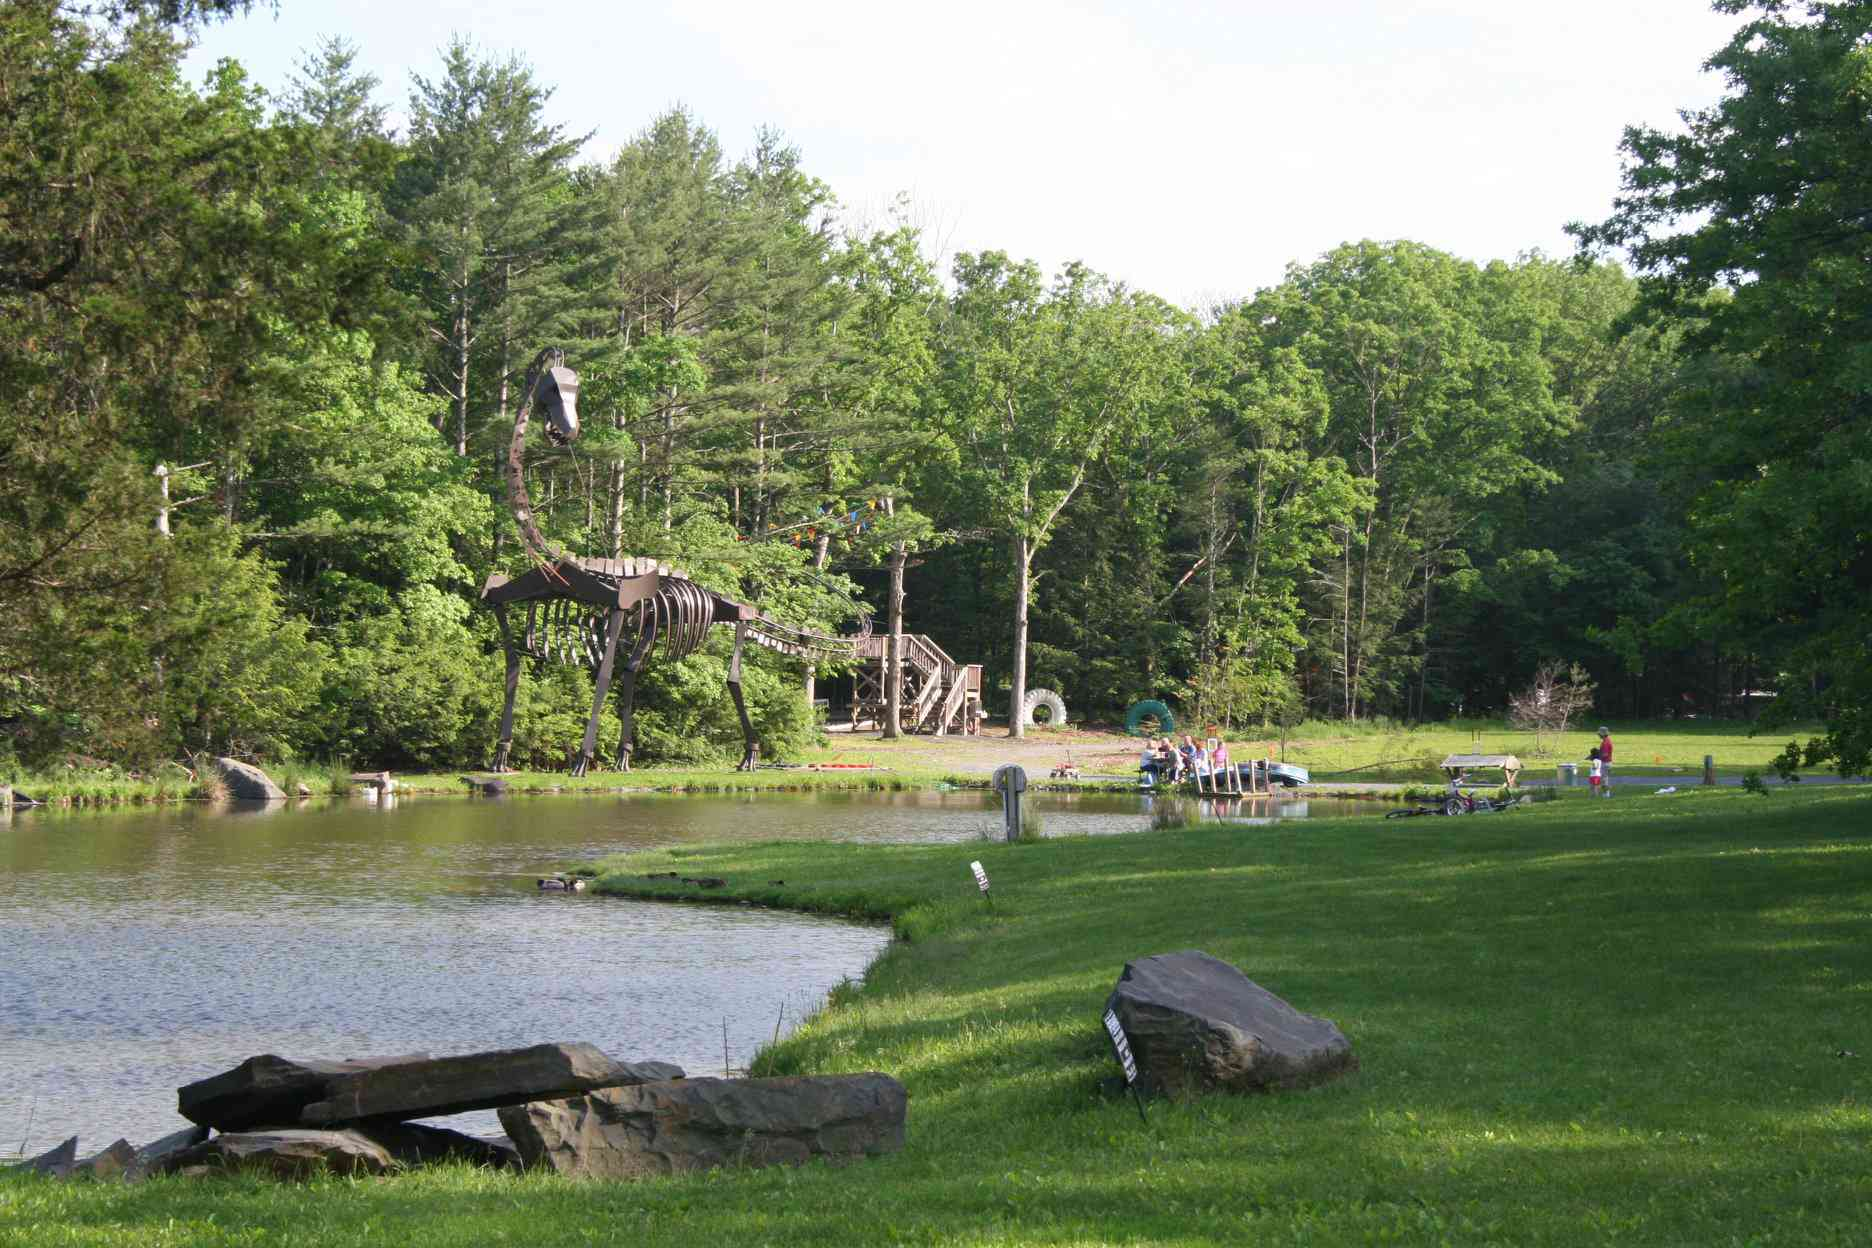 Pond and large statue at Rip Van Winkle Campgrounds